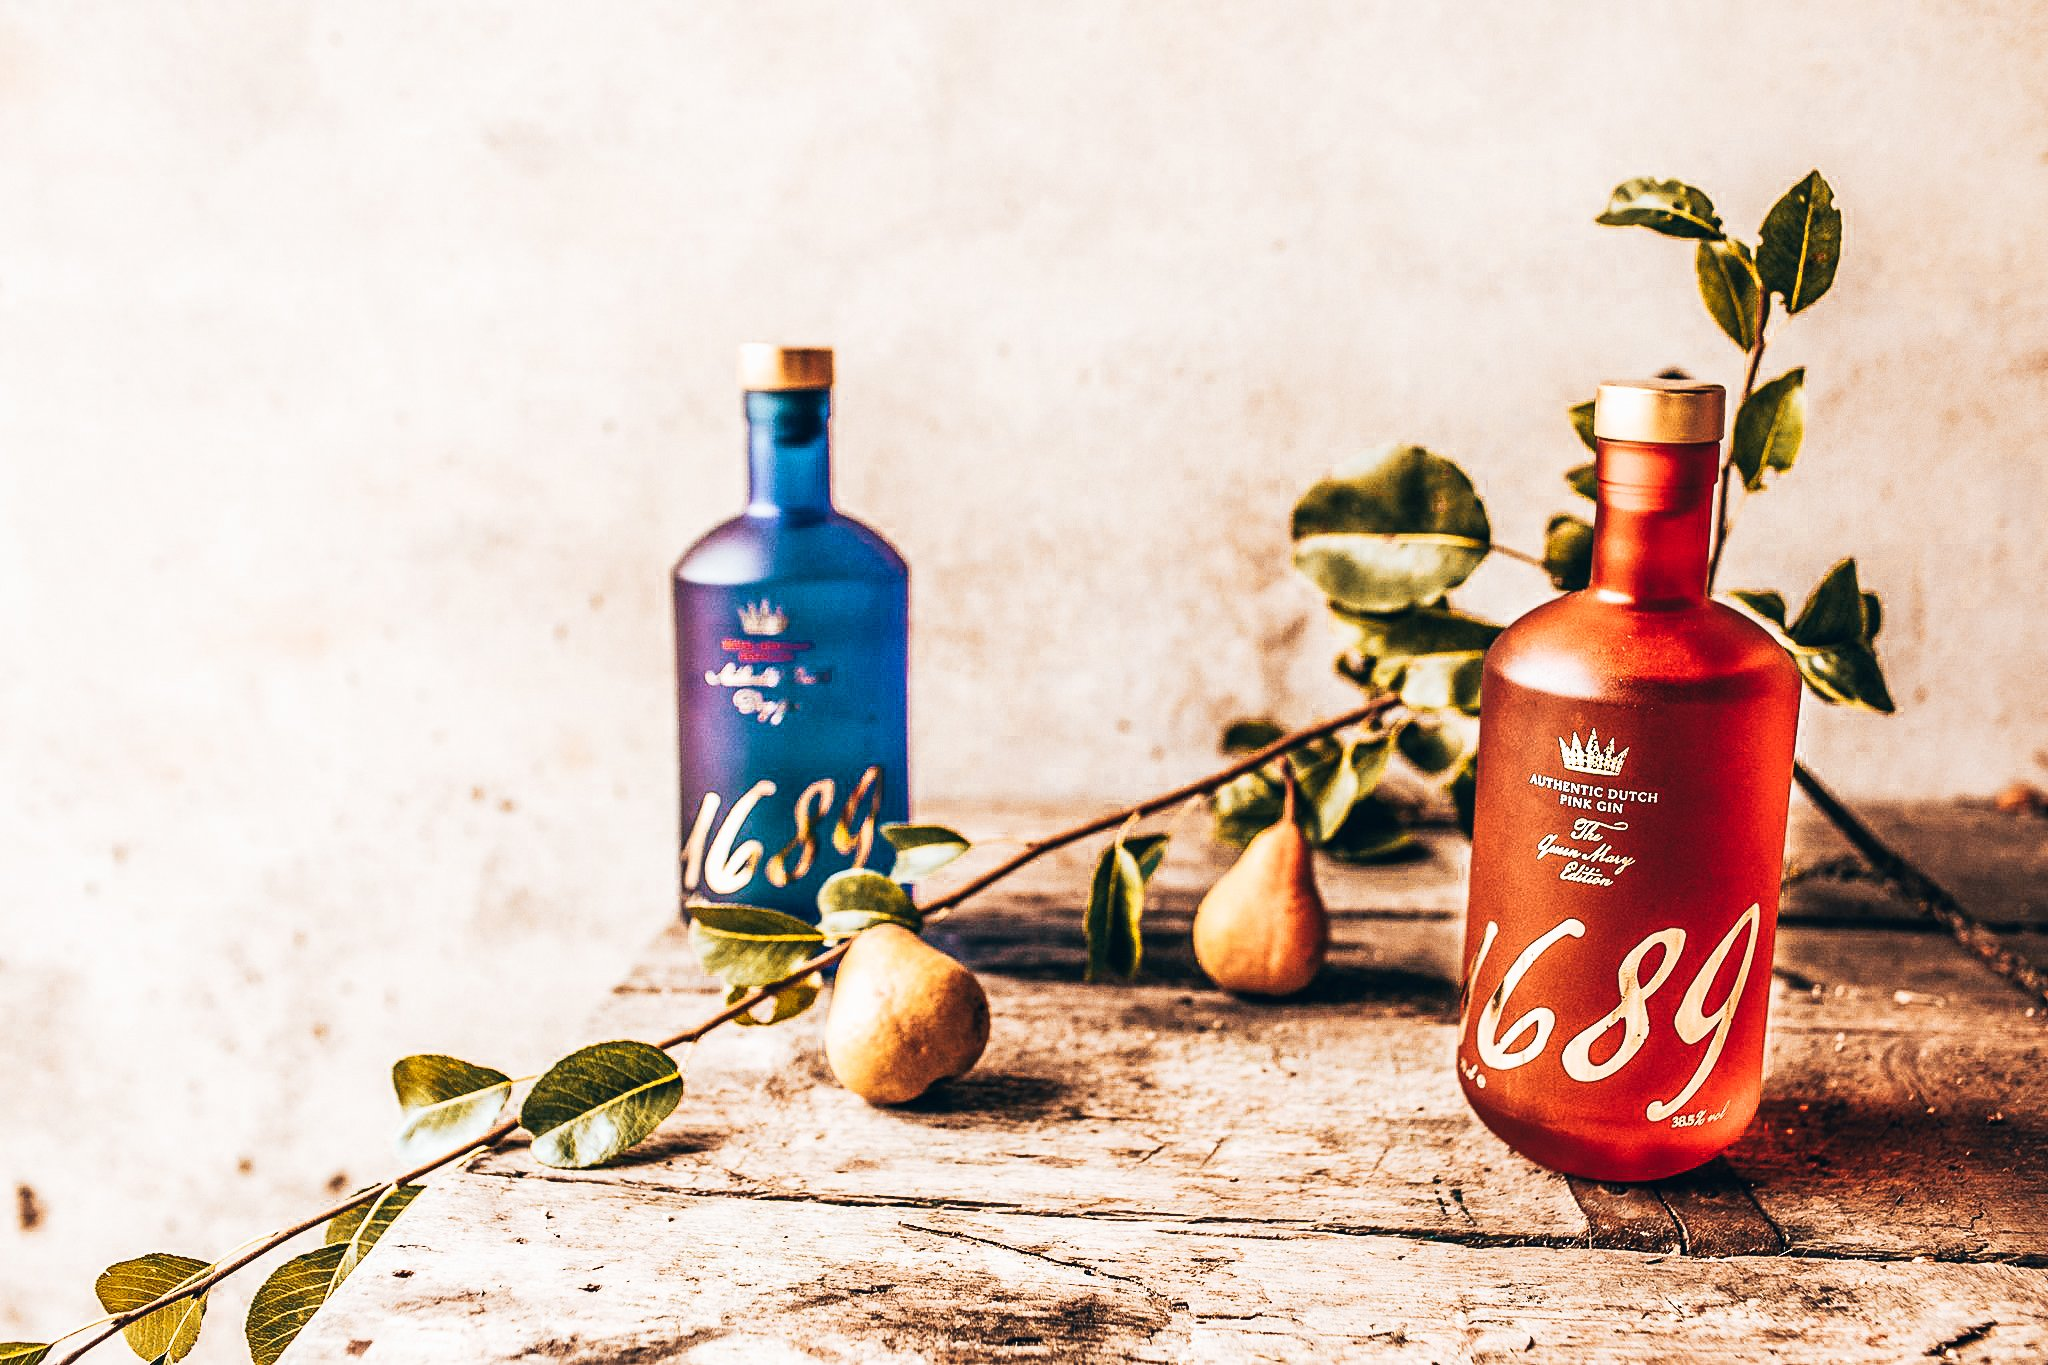 De gins van Gin 1689, Pink Gin, London Dry Gin, Alles over gin.